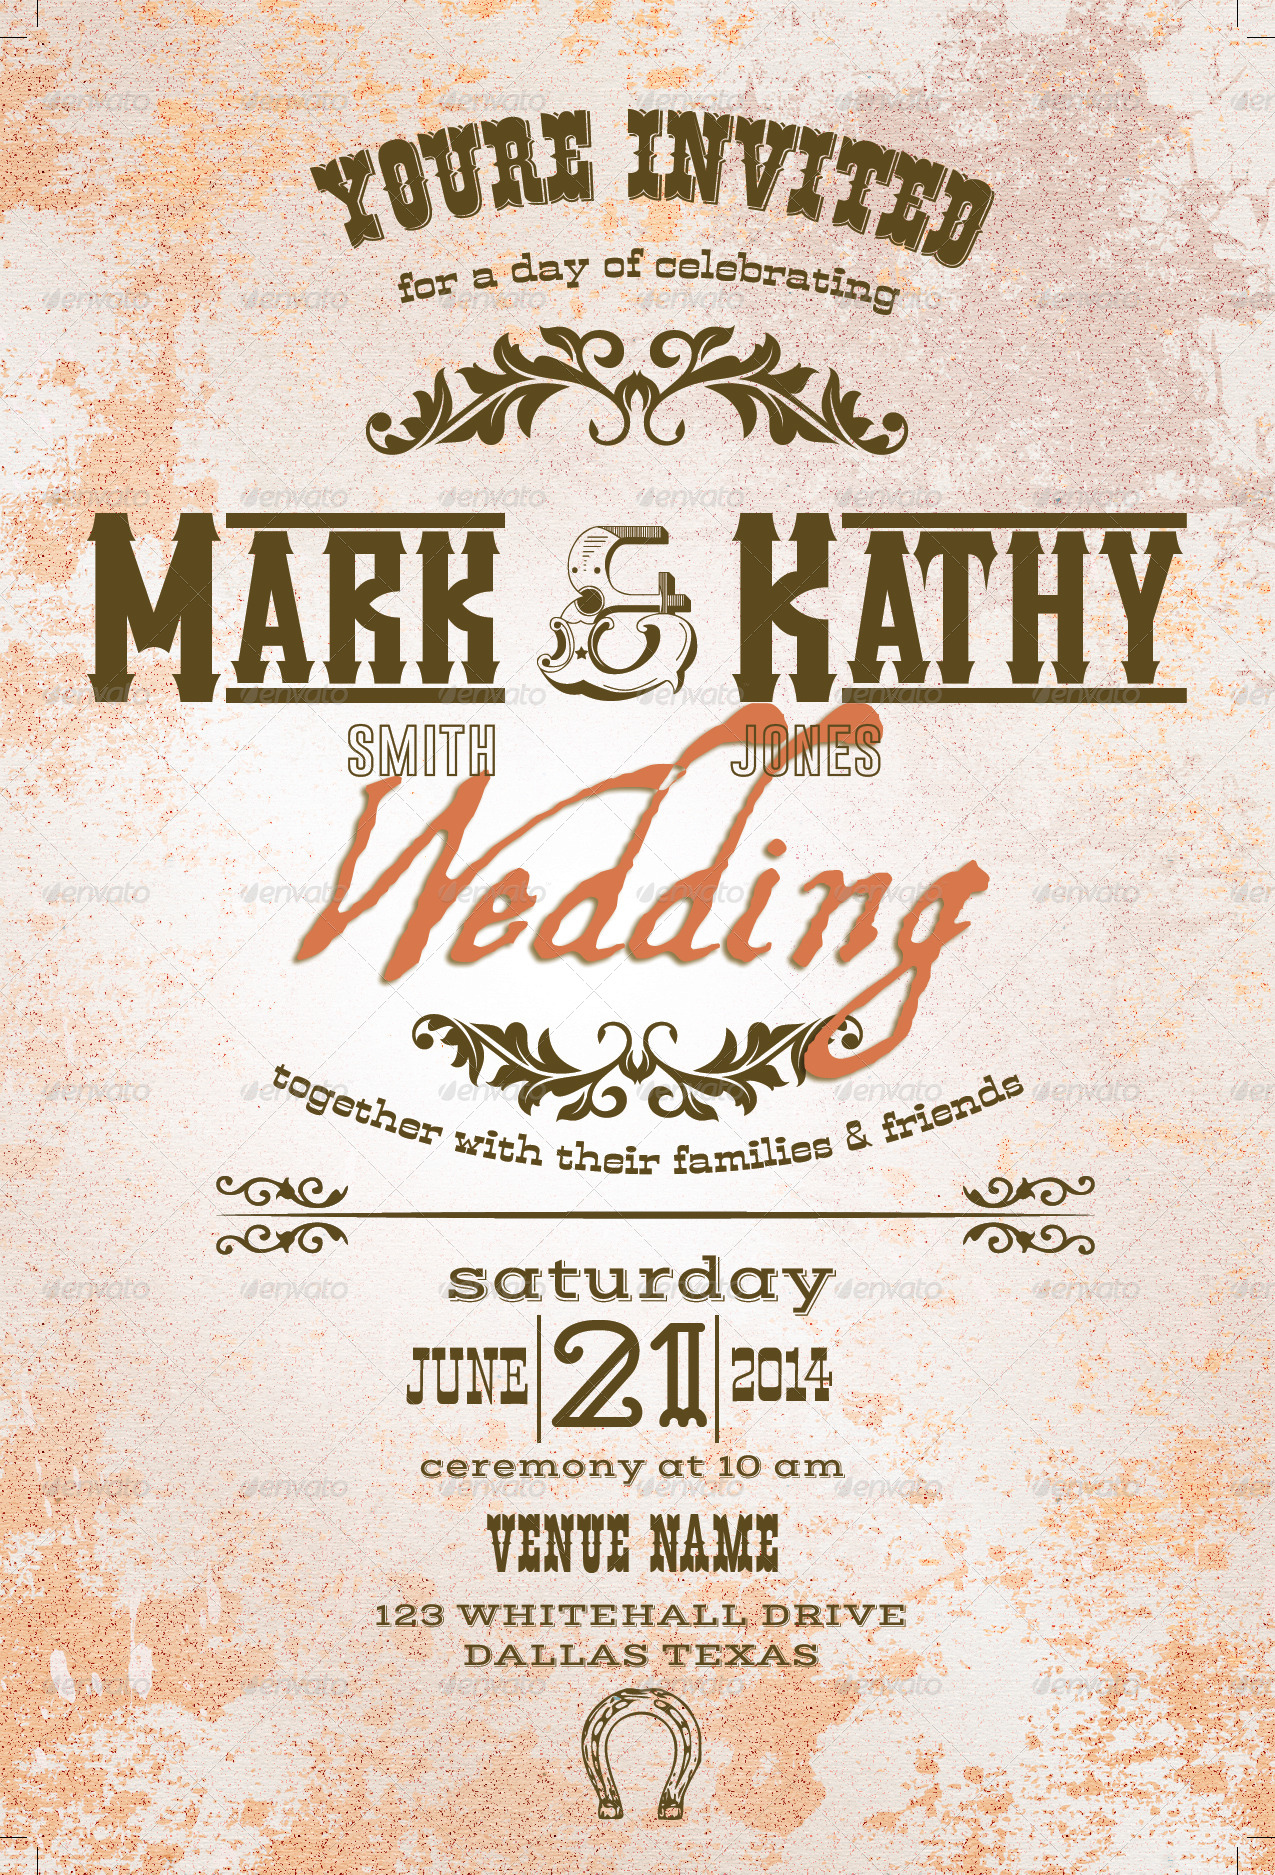 Western Wedding Style Set by arcford | GraphicRiver